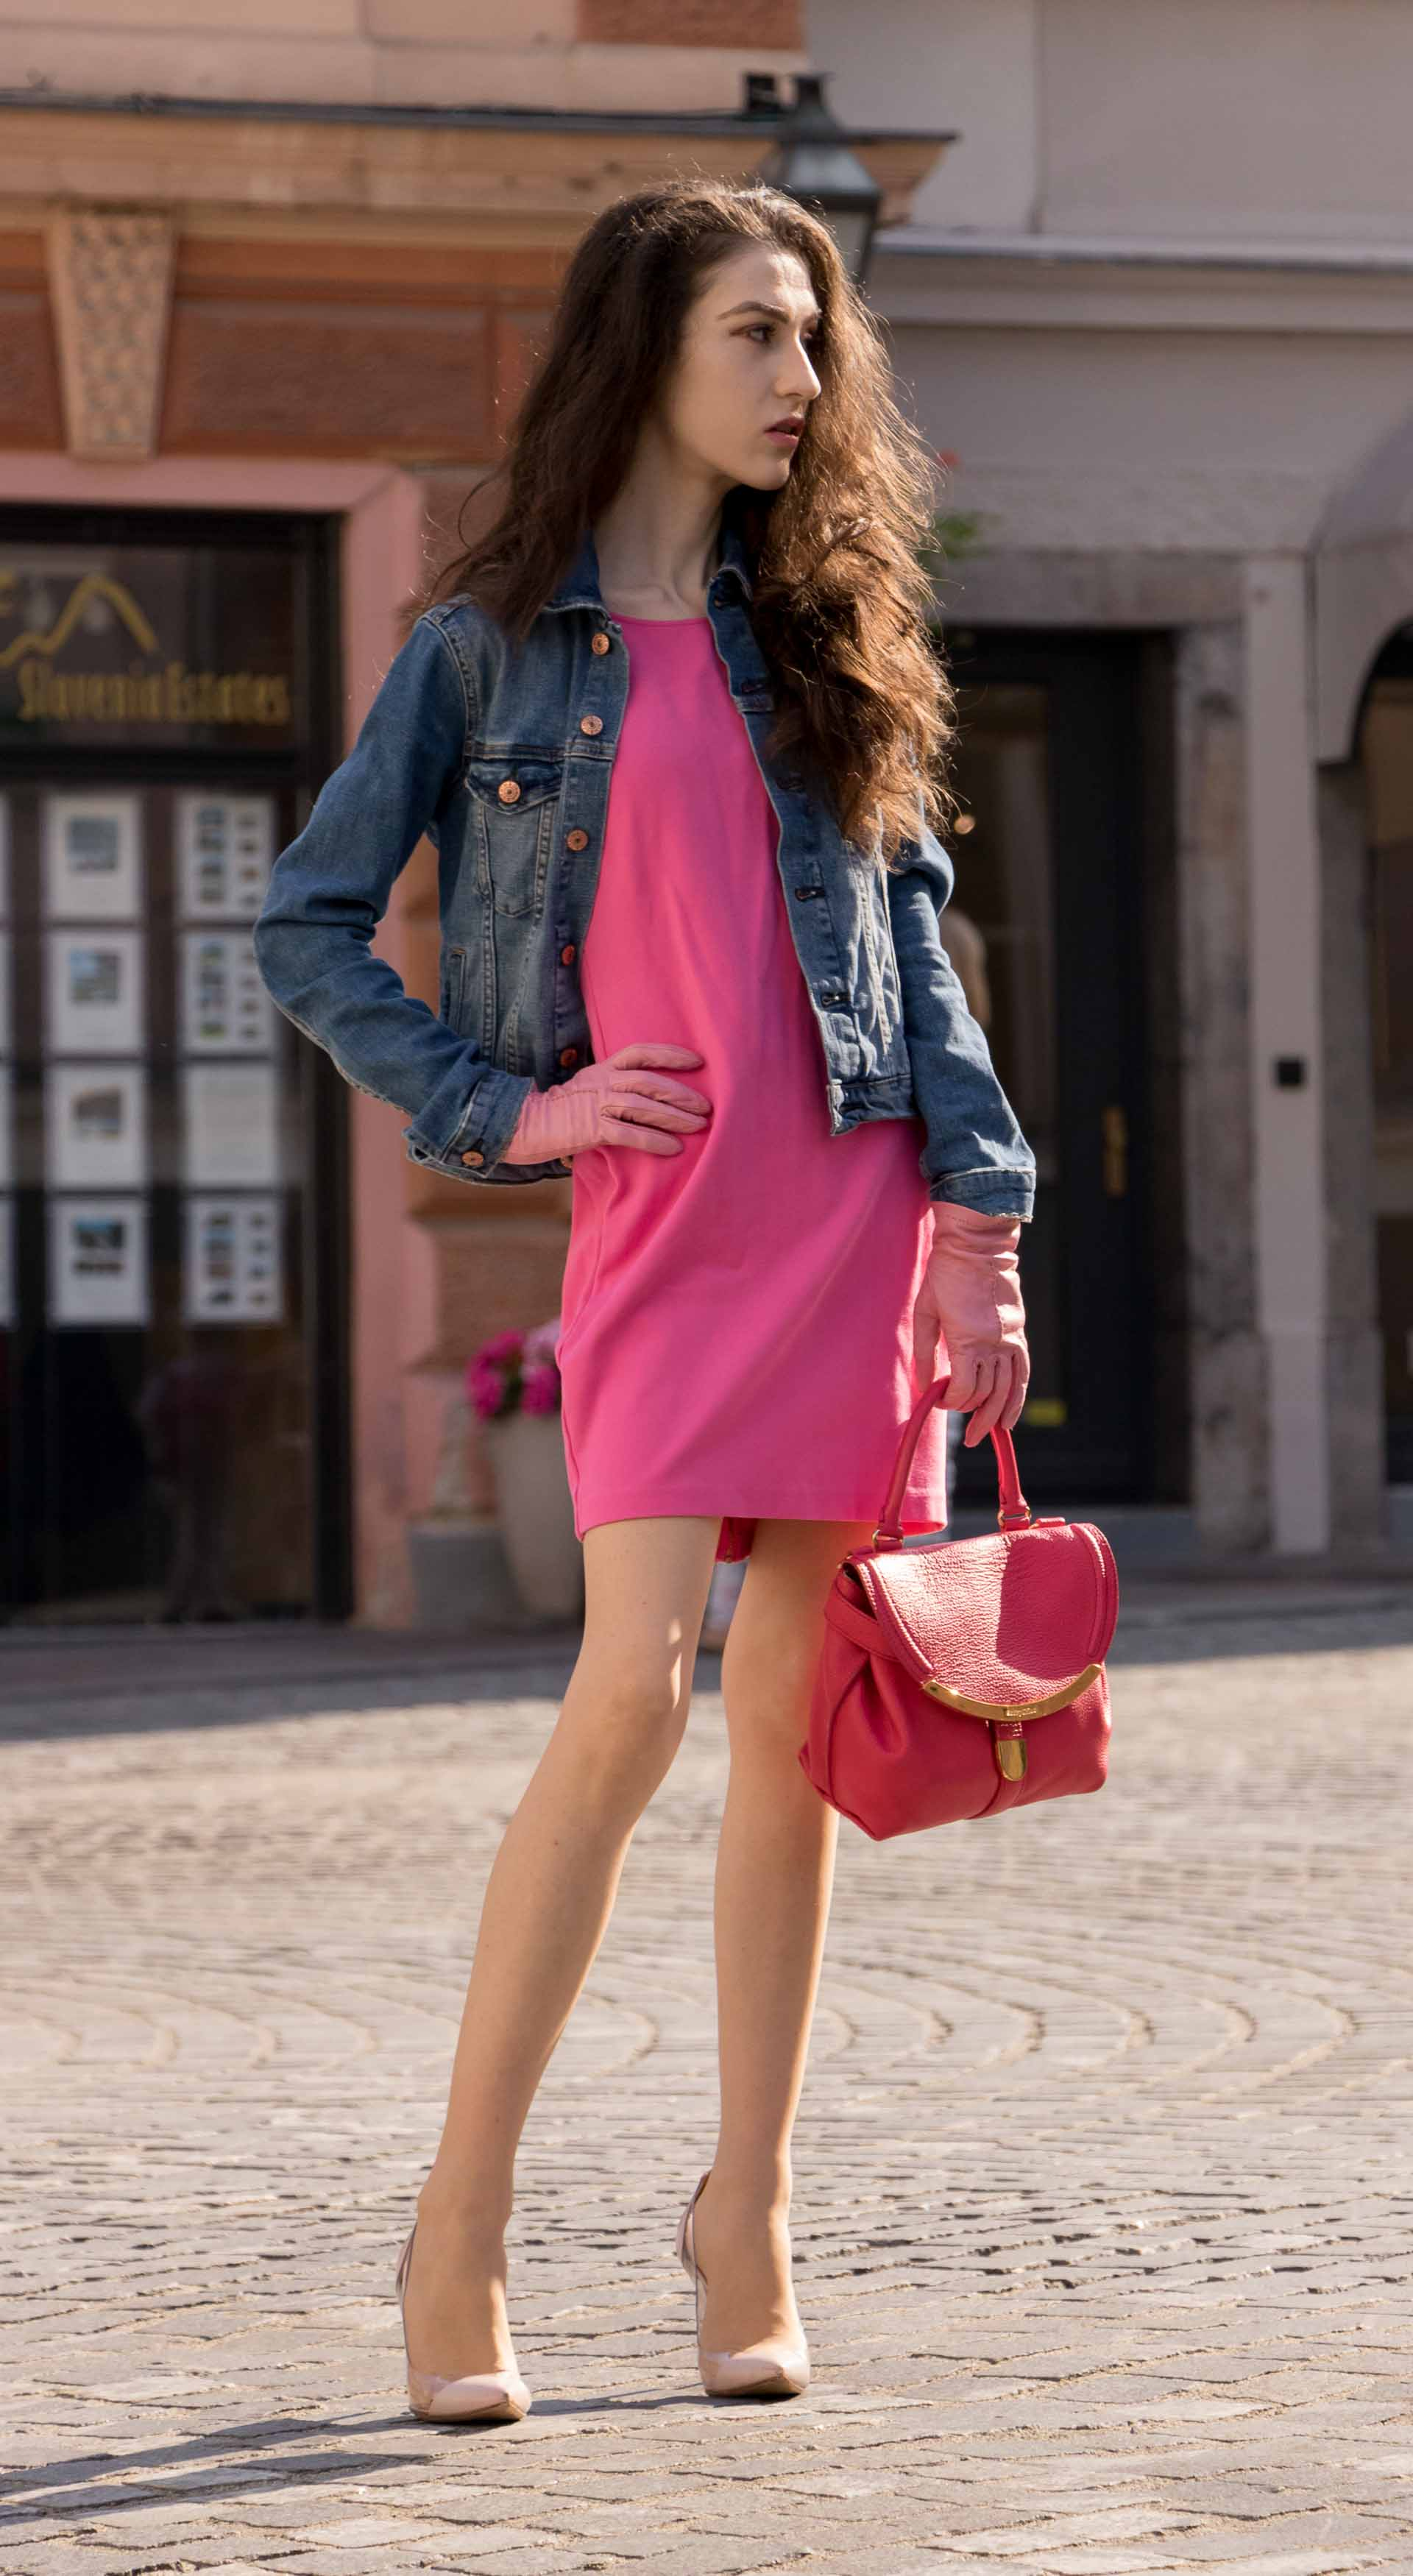 Veronika Lipar Fashion Blogger of Brunette from Wall Street dressed in H&M denim jacket, pink shift cady dress, blush Gianvito Rossi plexi pumps, pink Forzieri gloves, See by Chloé pink top handle bag, Adam Selman x Le Specs white cat eye Lolita sunglasses on the street in Ljubljana